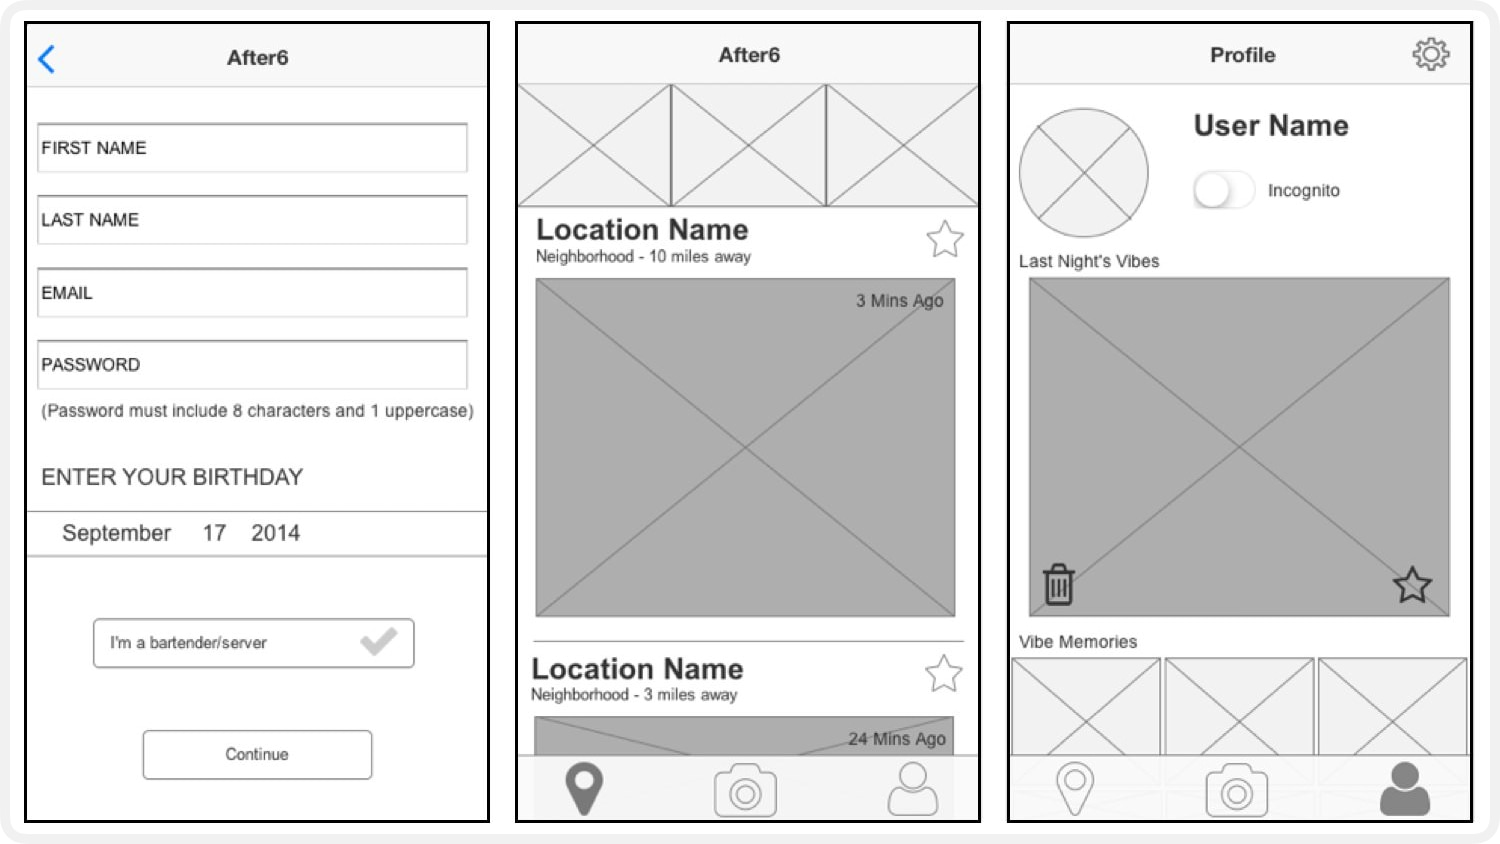 WIREFRAMES - After iterating, I turn the sketches into wireframes and add more details & specifics about specifically how the idea would work. These are useful for a variety of reasons - not only can I test this new version with users but I can also run it by the developers (if they have not already been involved). This is a great time to find out about any potential issues with the new designs; that way we can work together & collaborate to find a suitable alternative before any time gets wasted on an idea that can't be built.